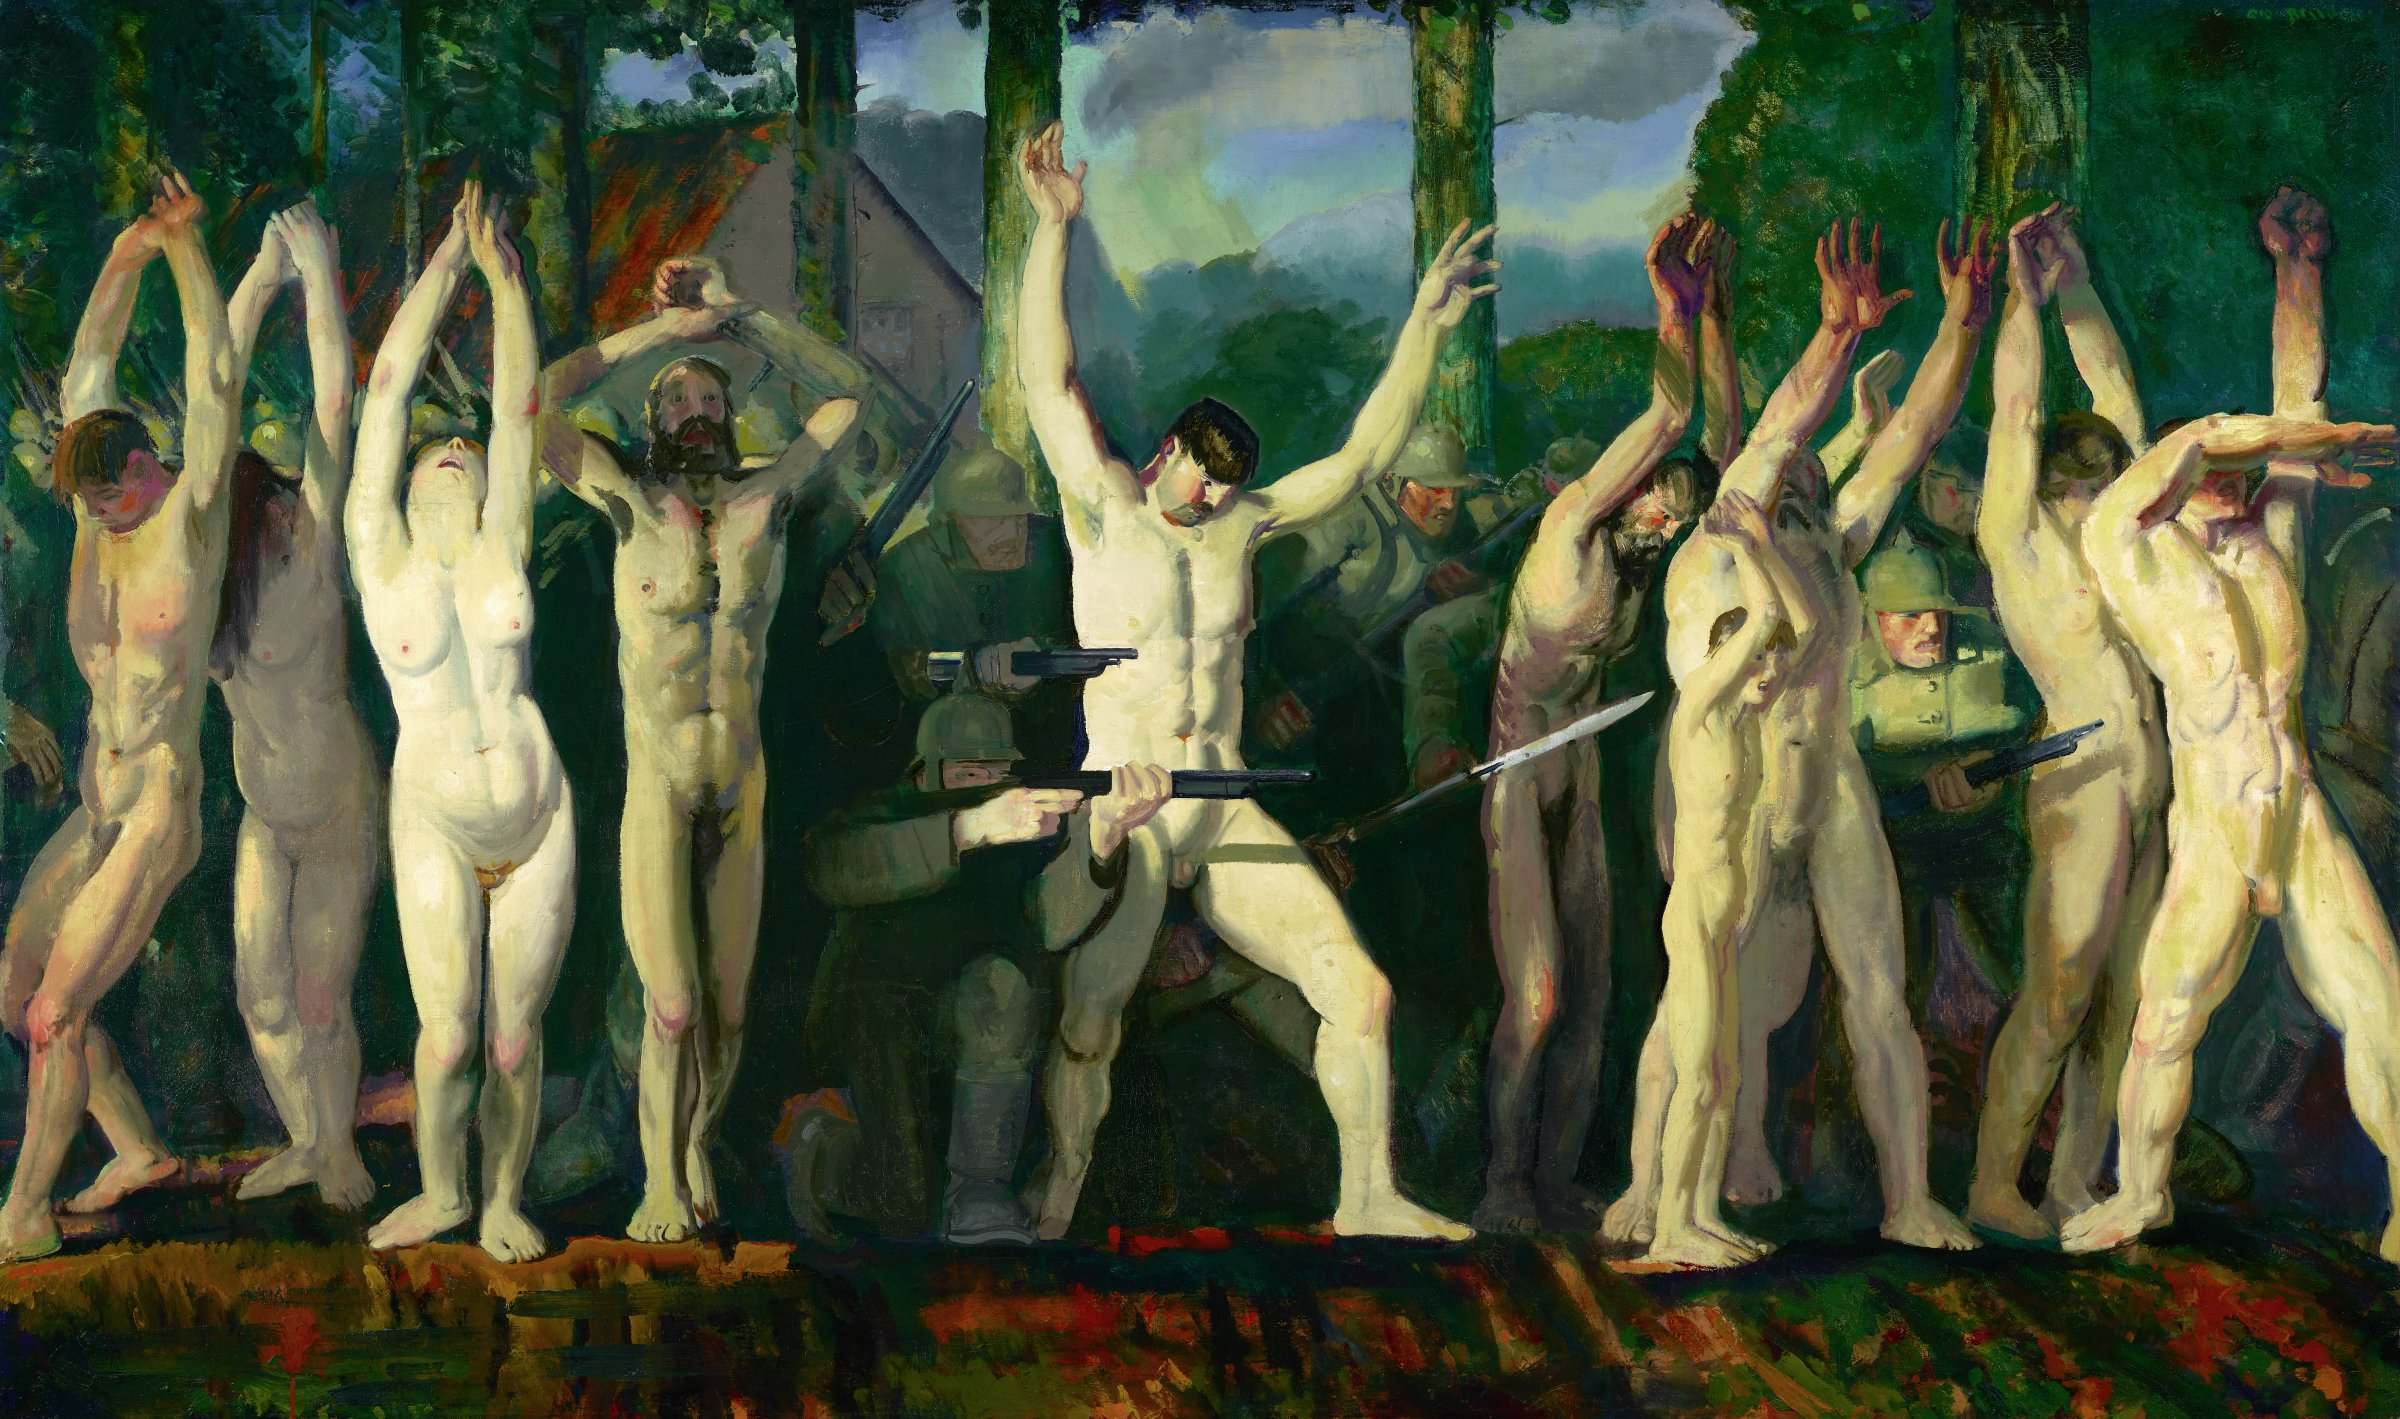 The Barricade, George Wesley Bellows, oil on canvas